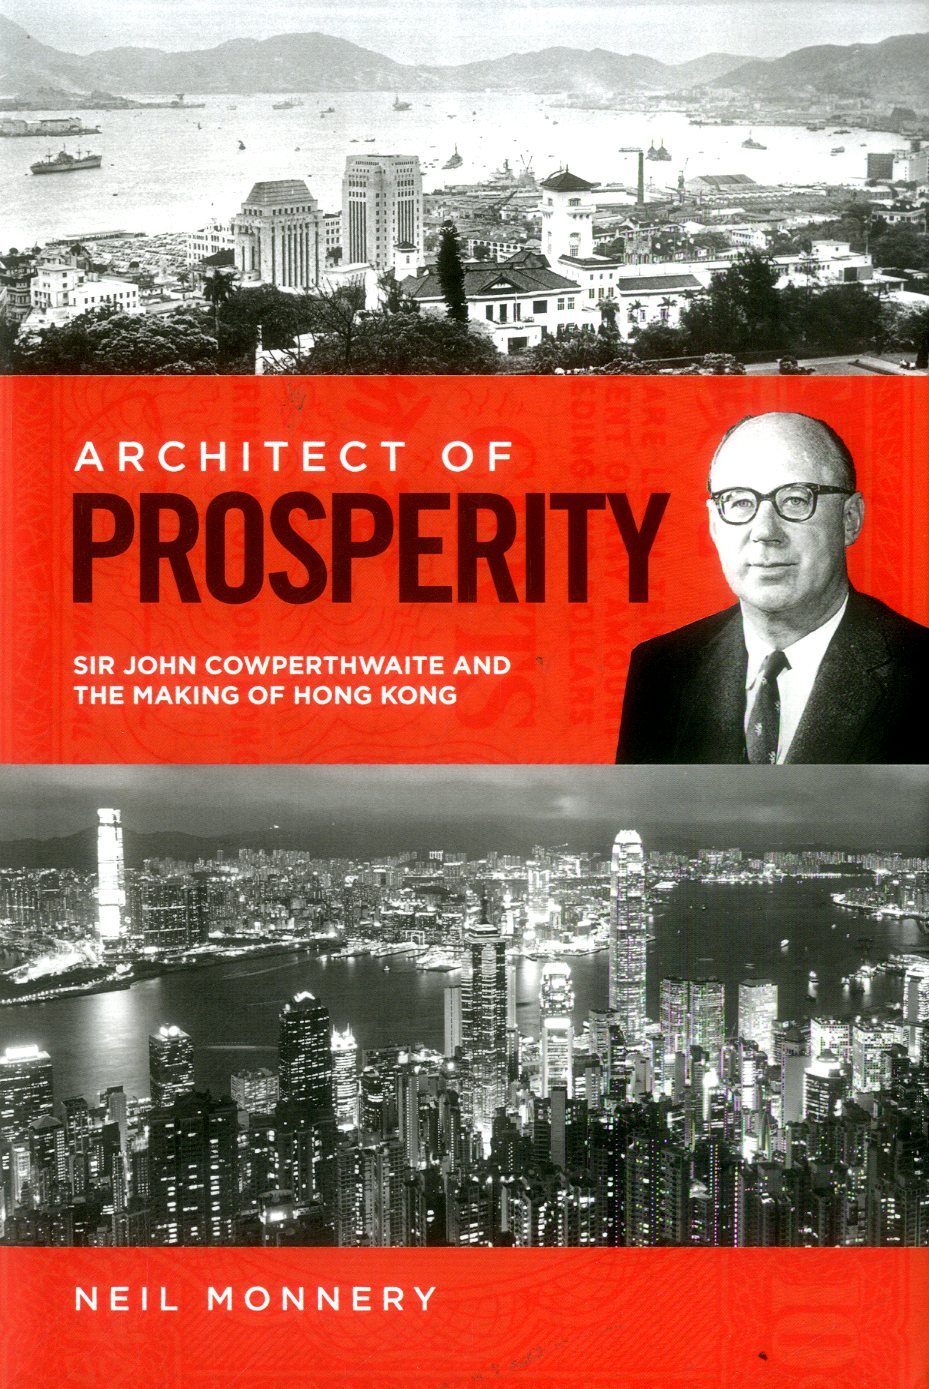 architect-of-prosperity-sir-john-cowperthwaite-and-the-making-of-hong-kong